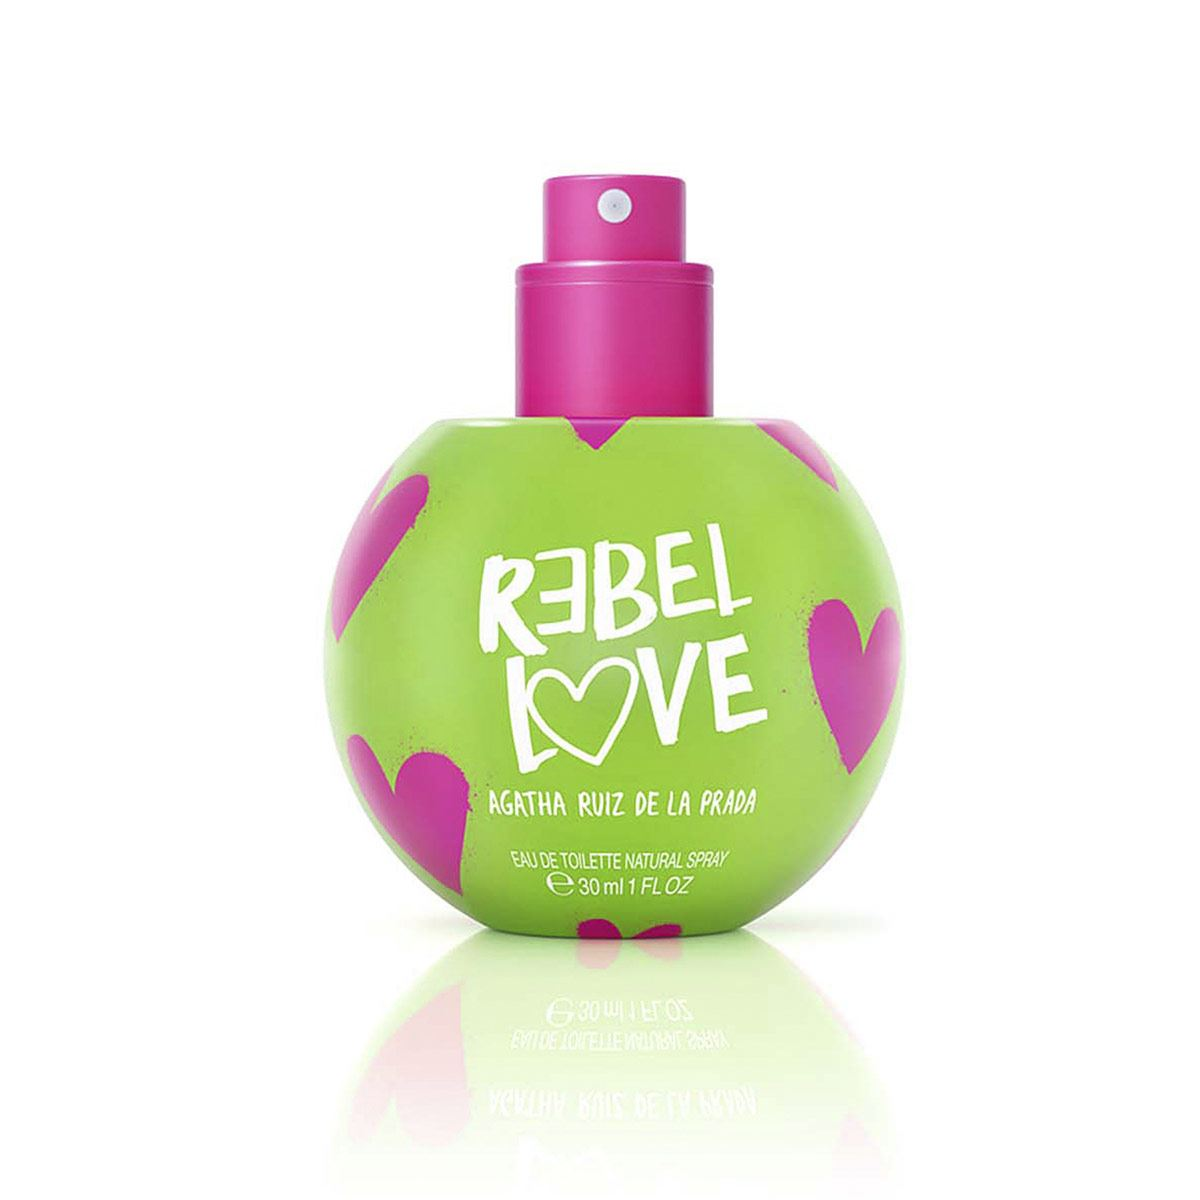 Fragancia para Dama, Agatha Ruiz de la Prada, Bubbles Rebel Love EDT 30ML